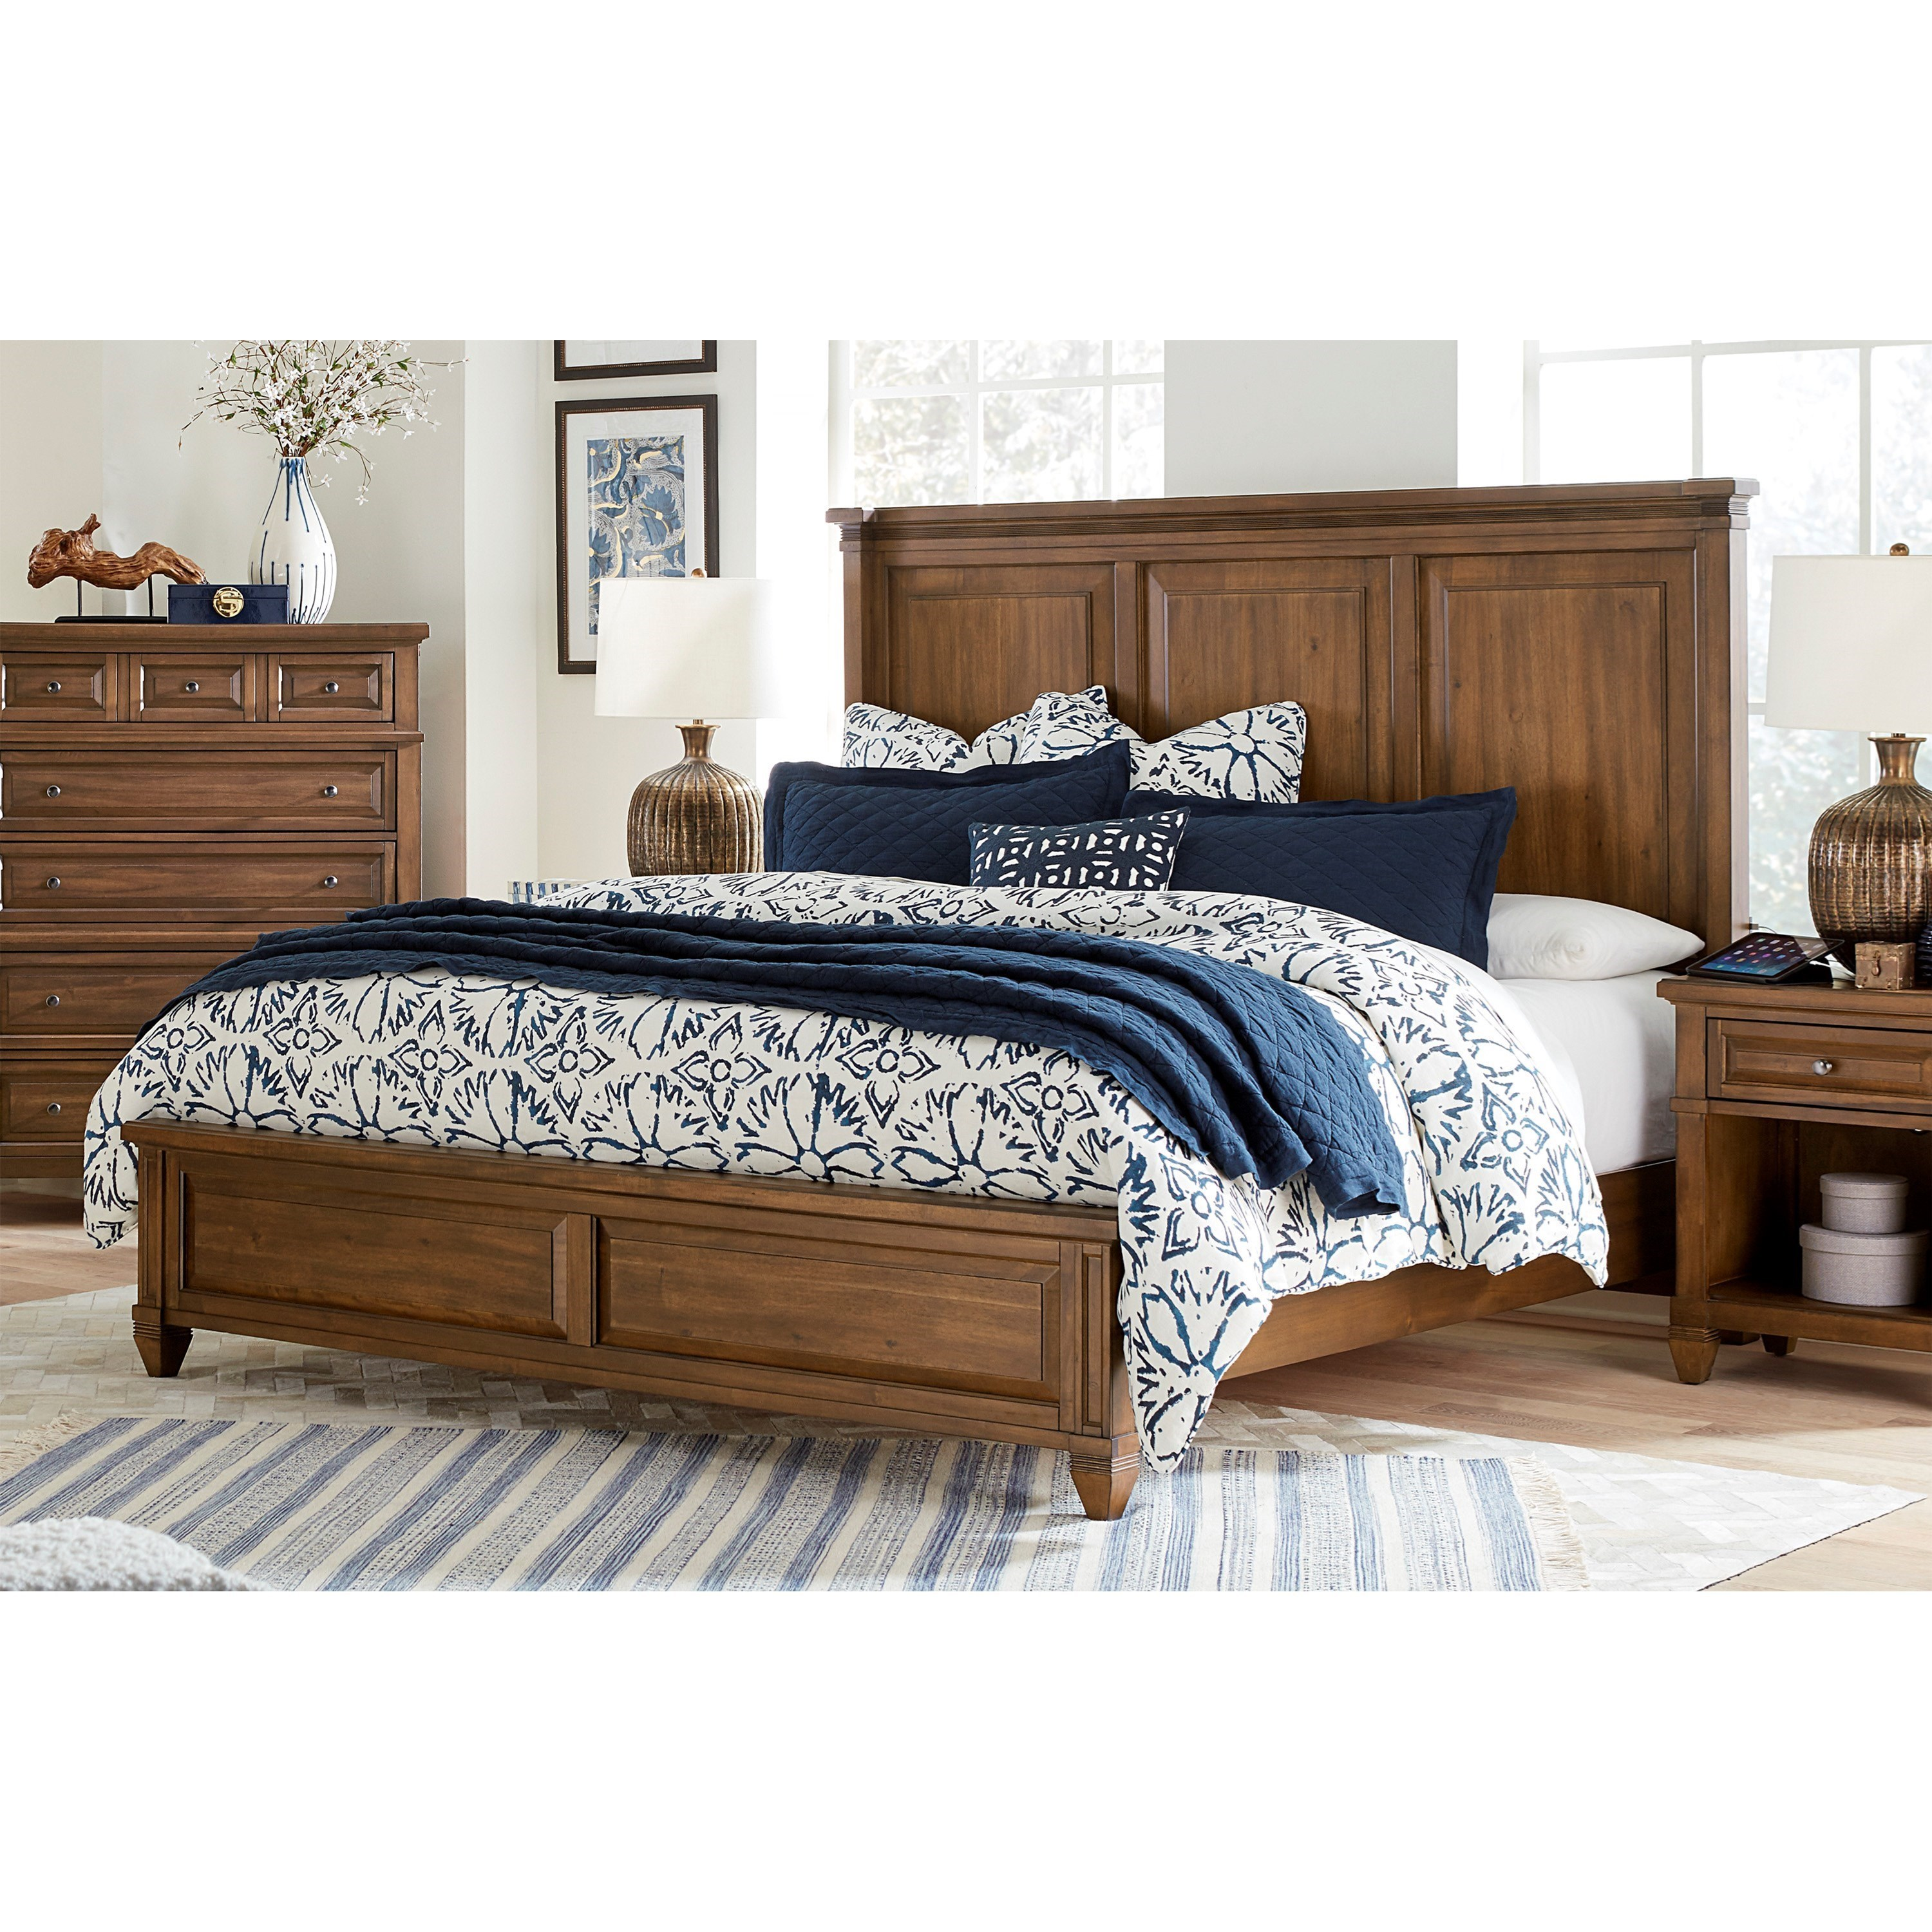 Transitional California King Panel Bed with USB Charging Ports